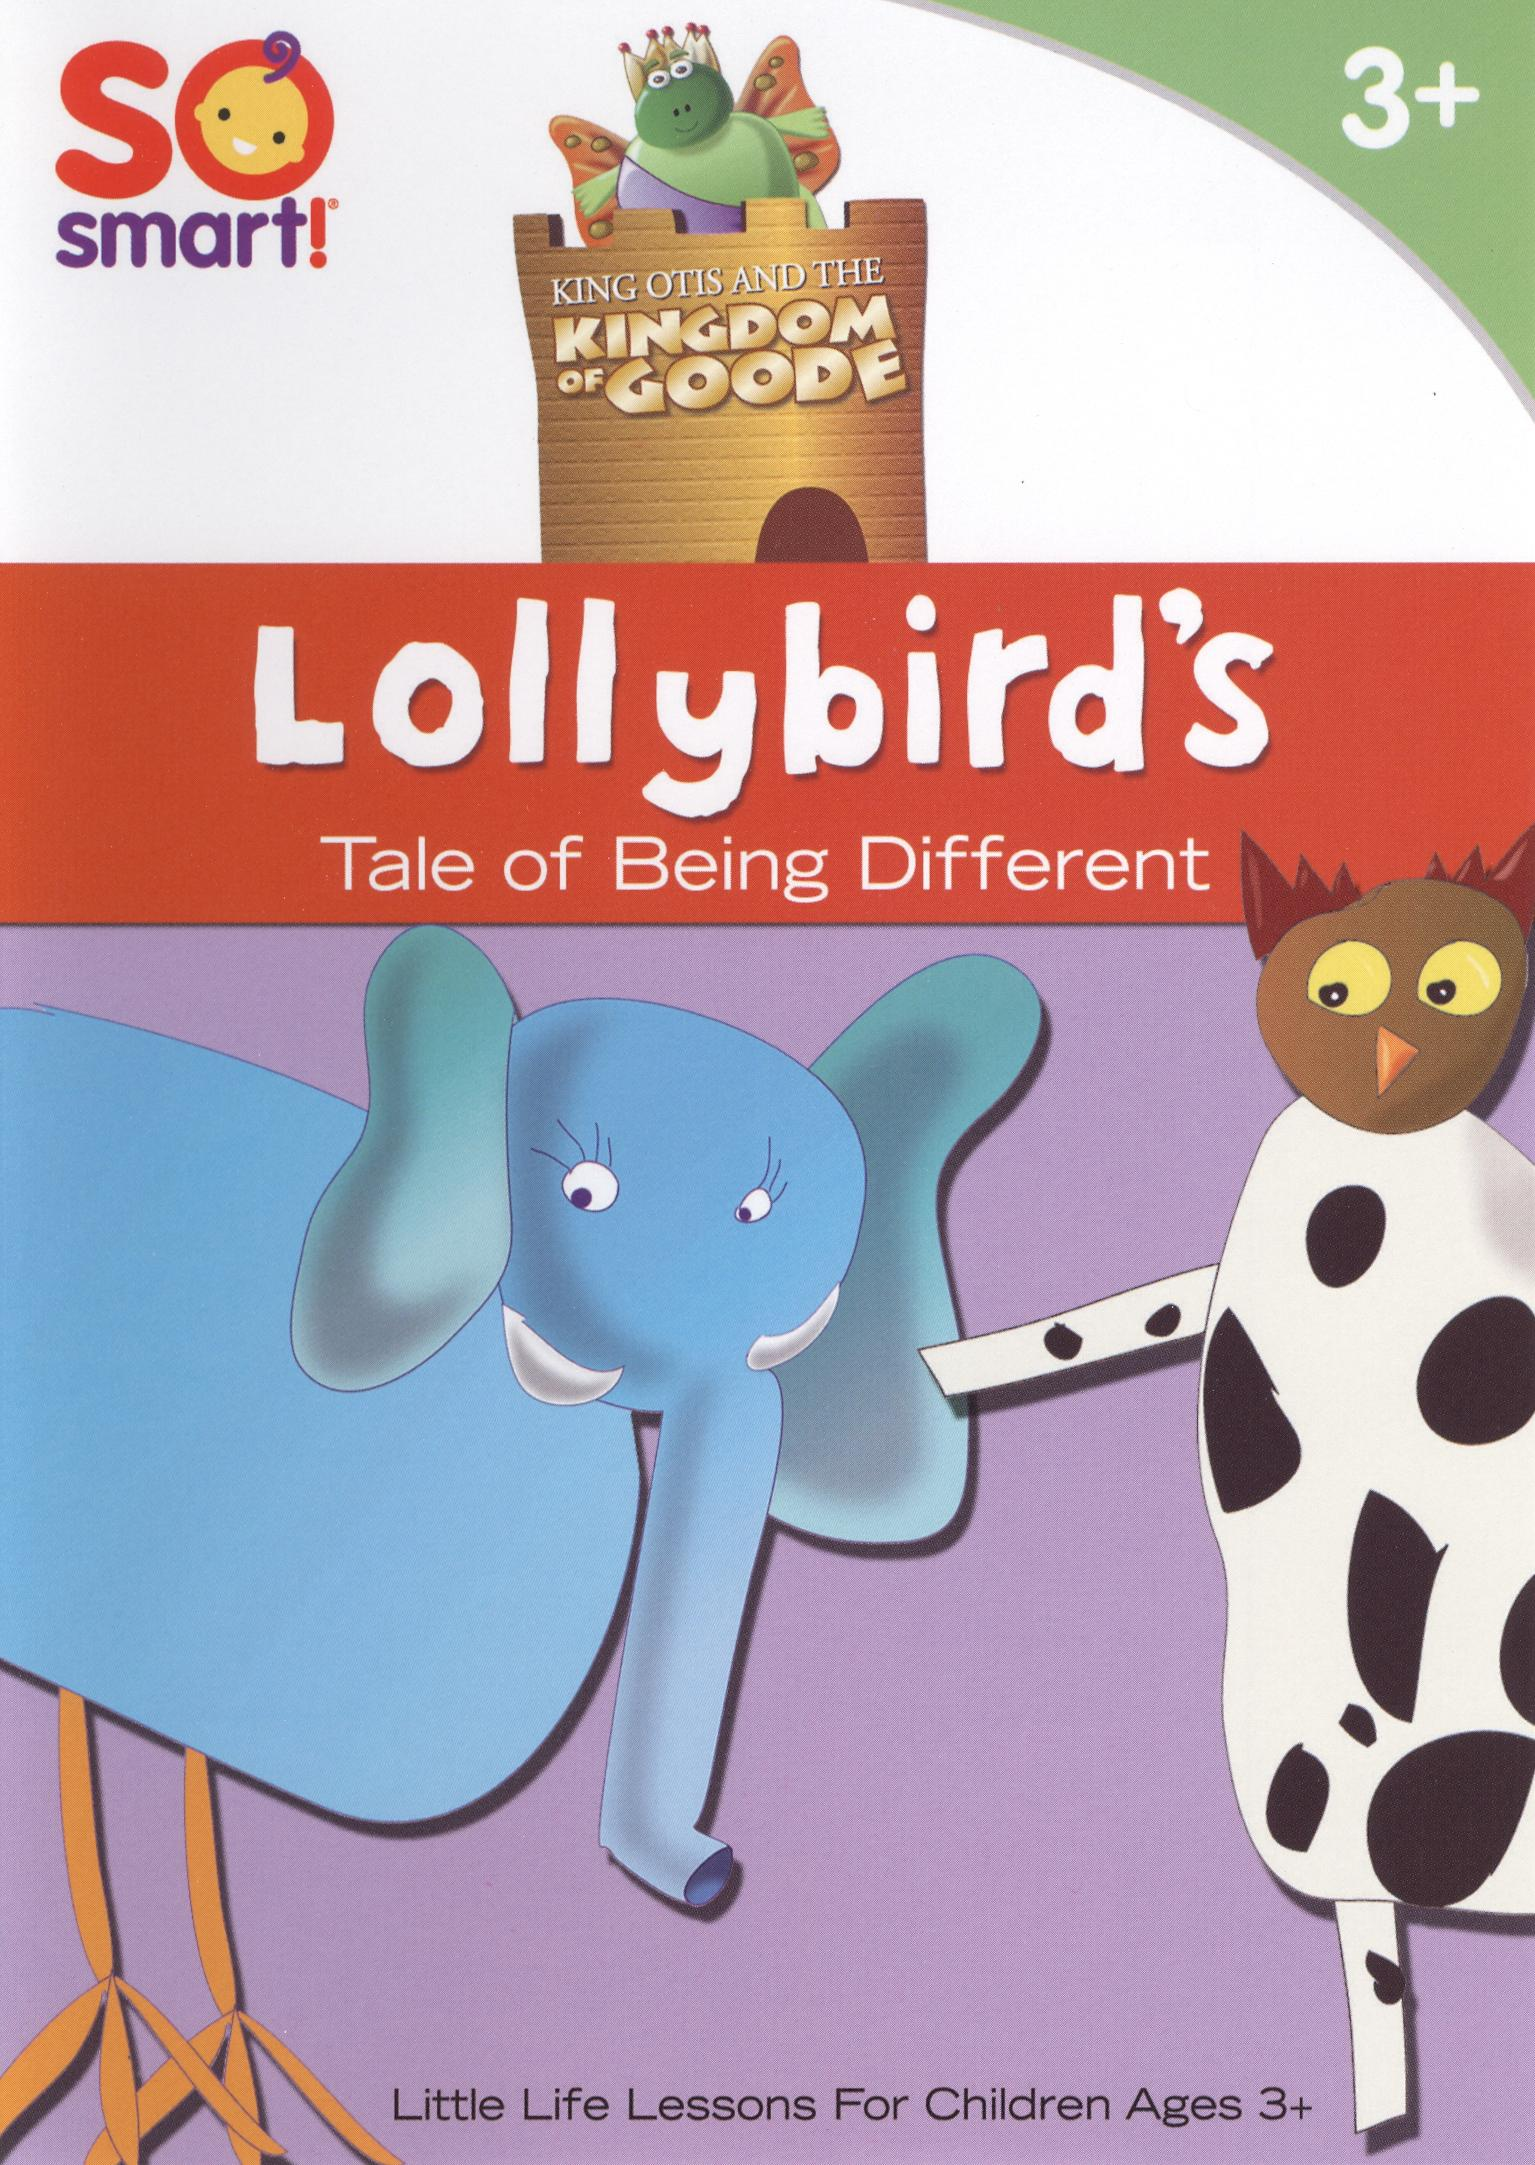 King Otis and the Kingdom of Goode: Lollybird's Tale of Being Different